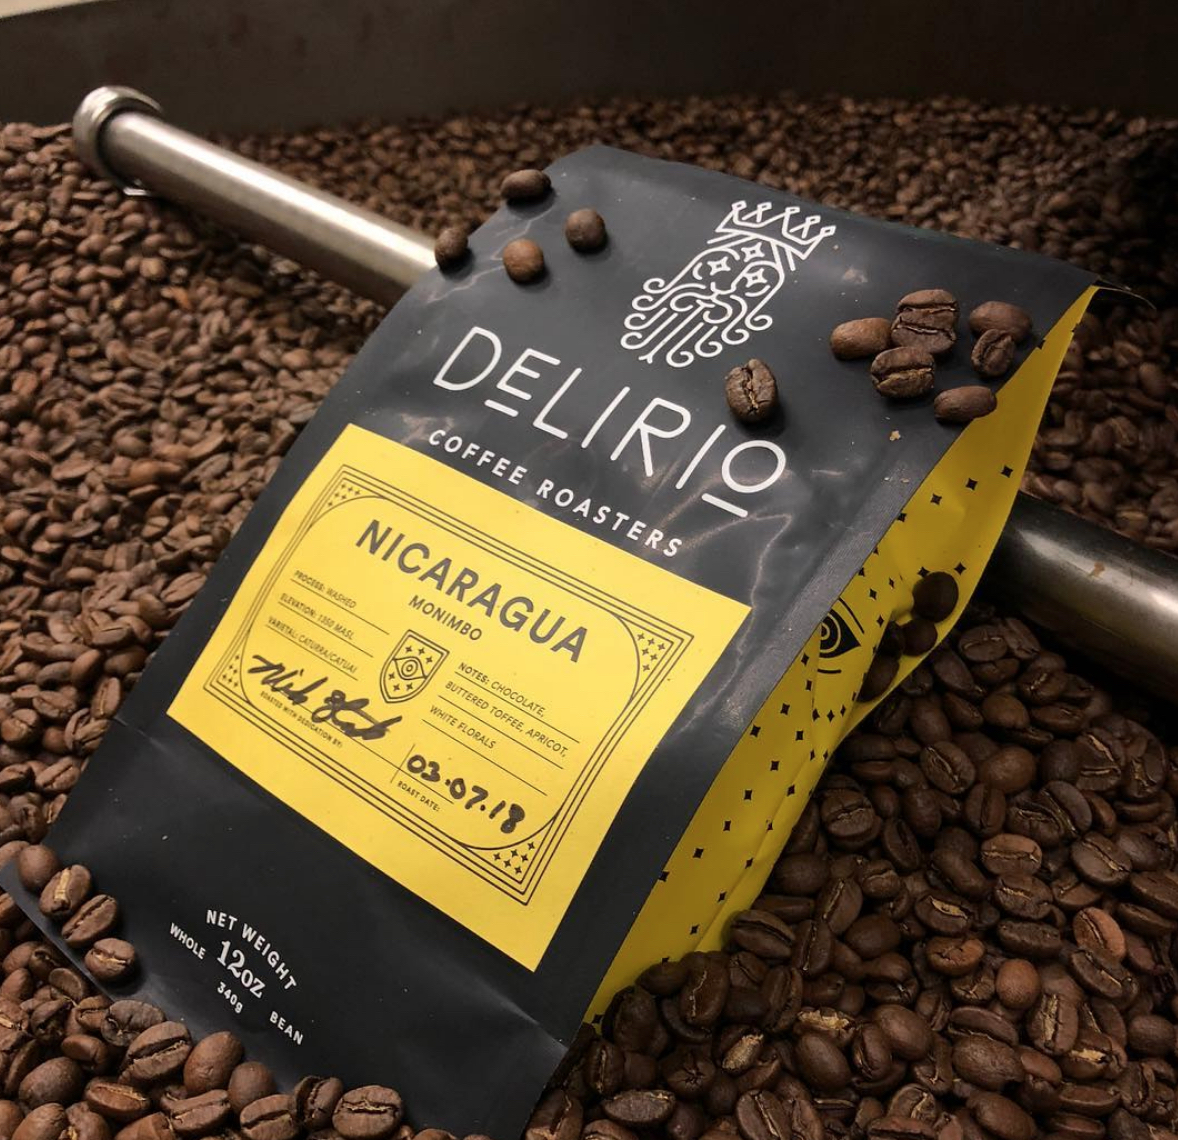 delirio coffee roasters florida